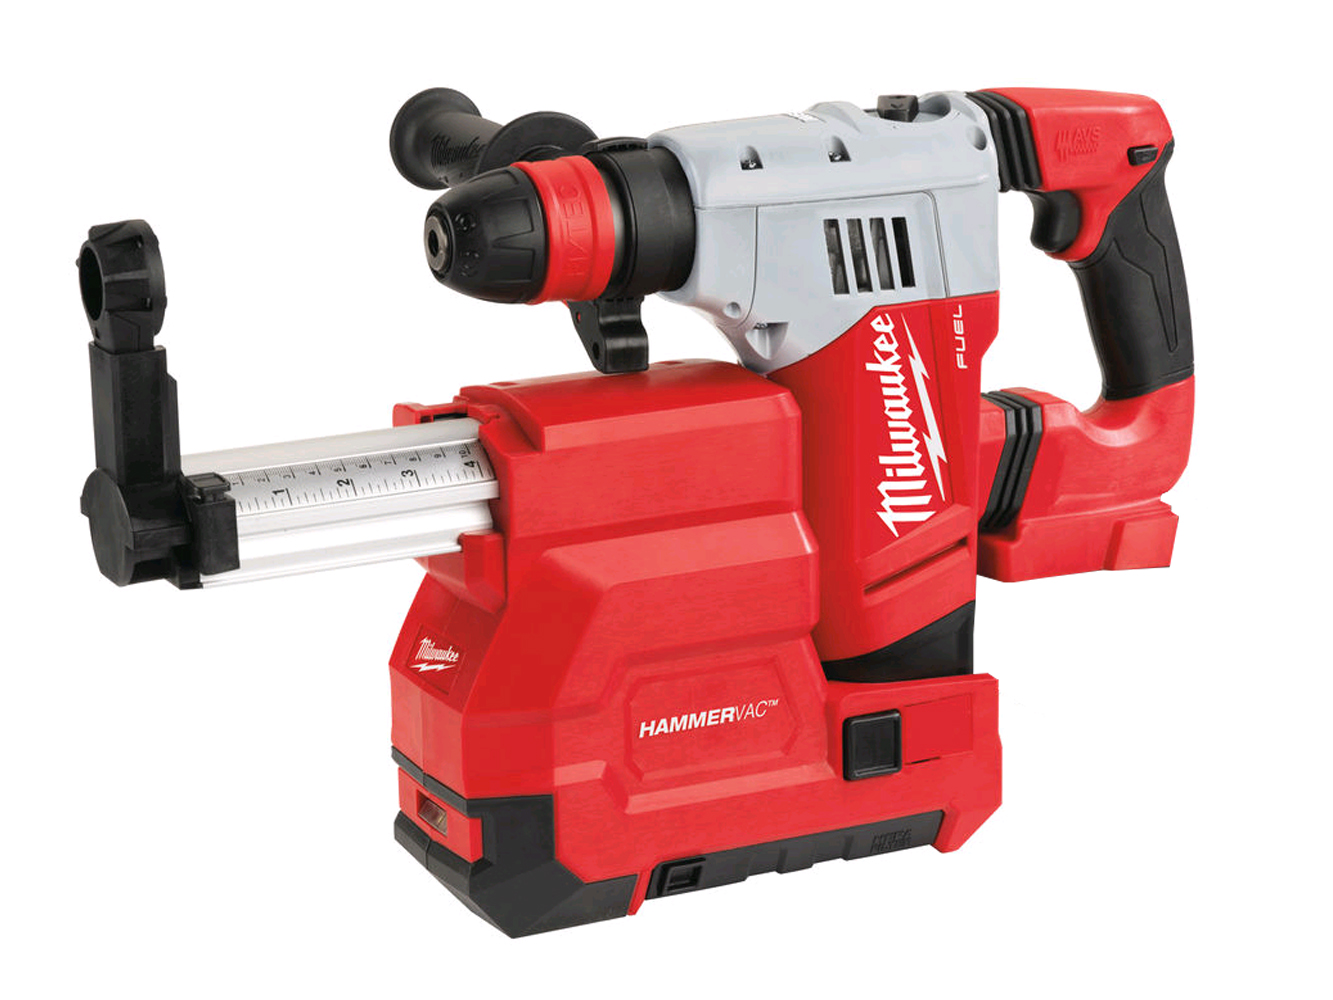 MILWAUKEE 18V FUEL SDS+ HAMMER & DUST EXTRACTOR - M18CHPXDE - BODY ONLY